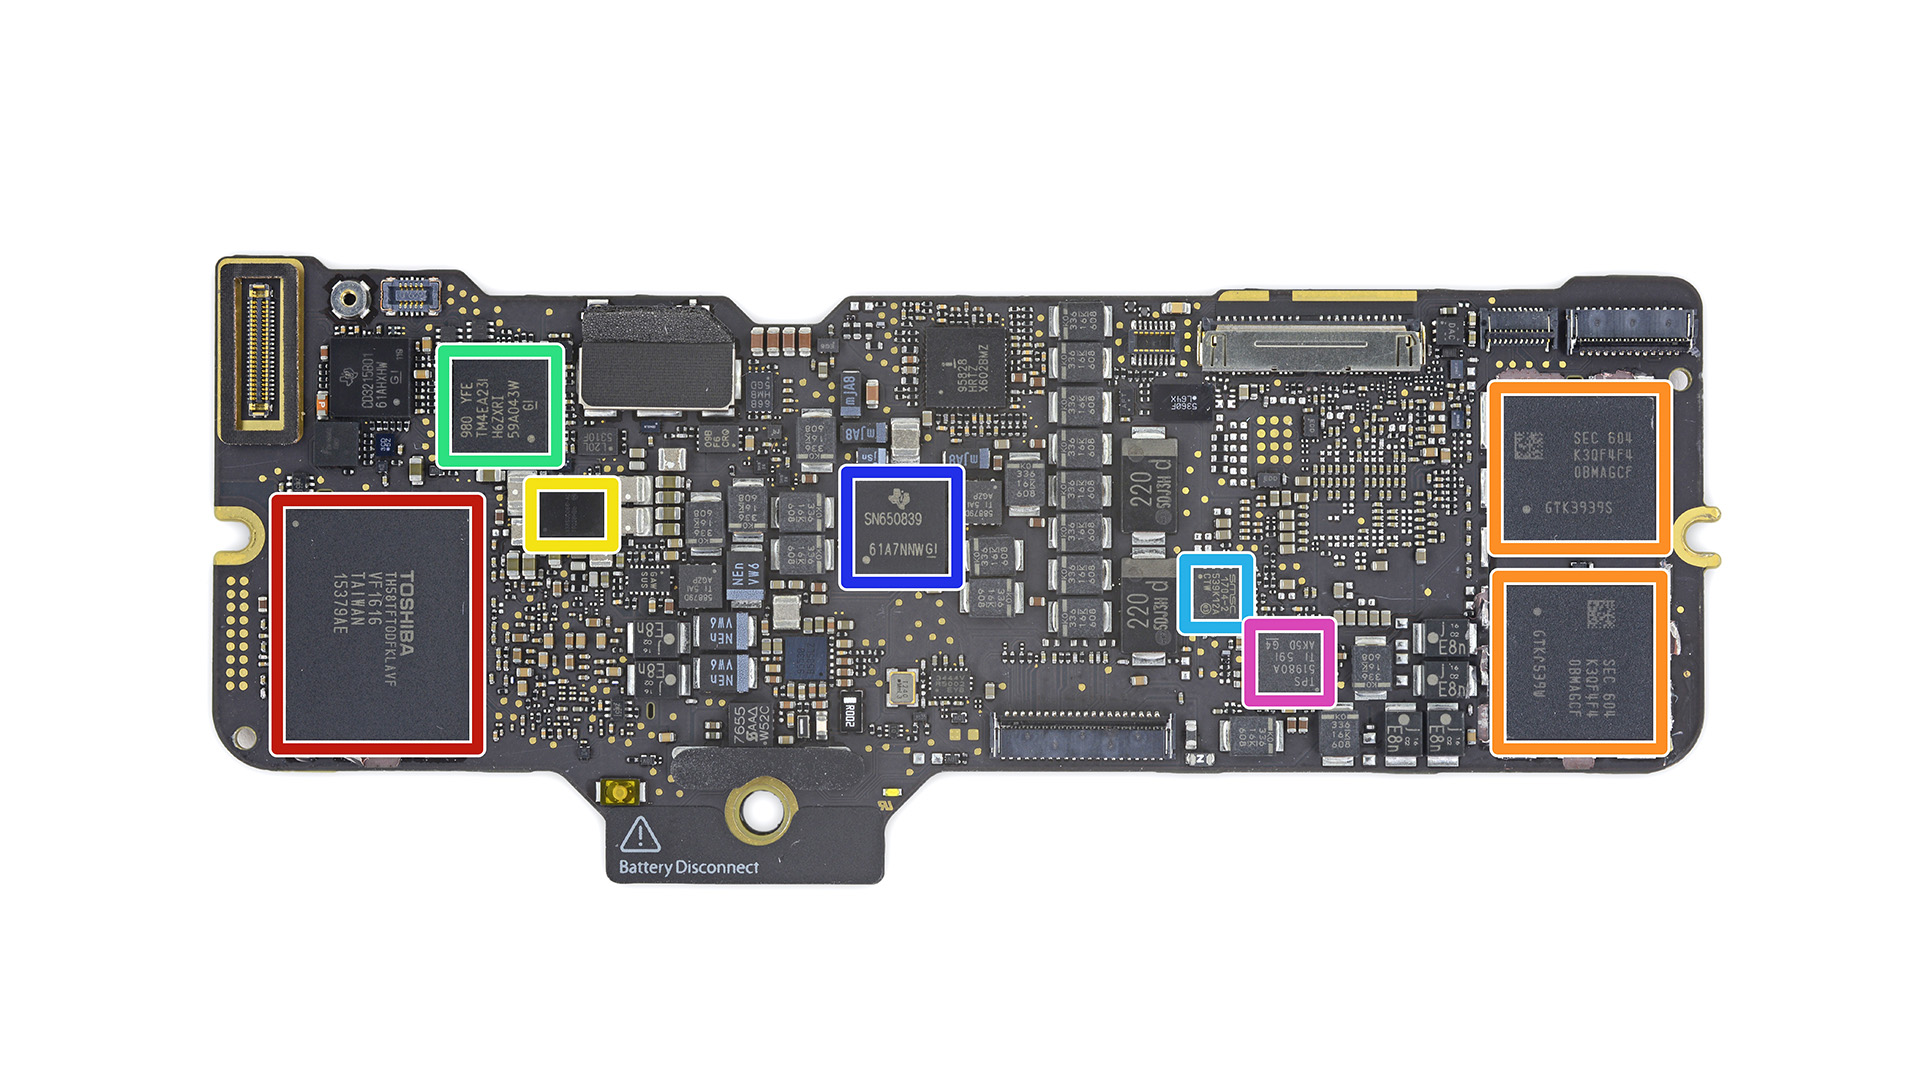 MacBook skylake pcb_2